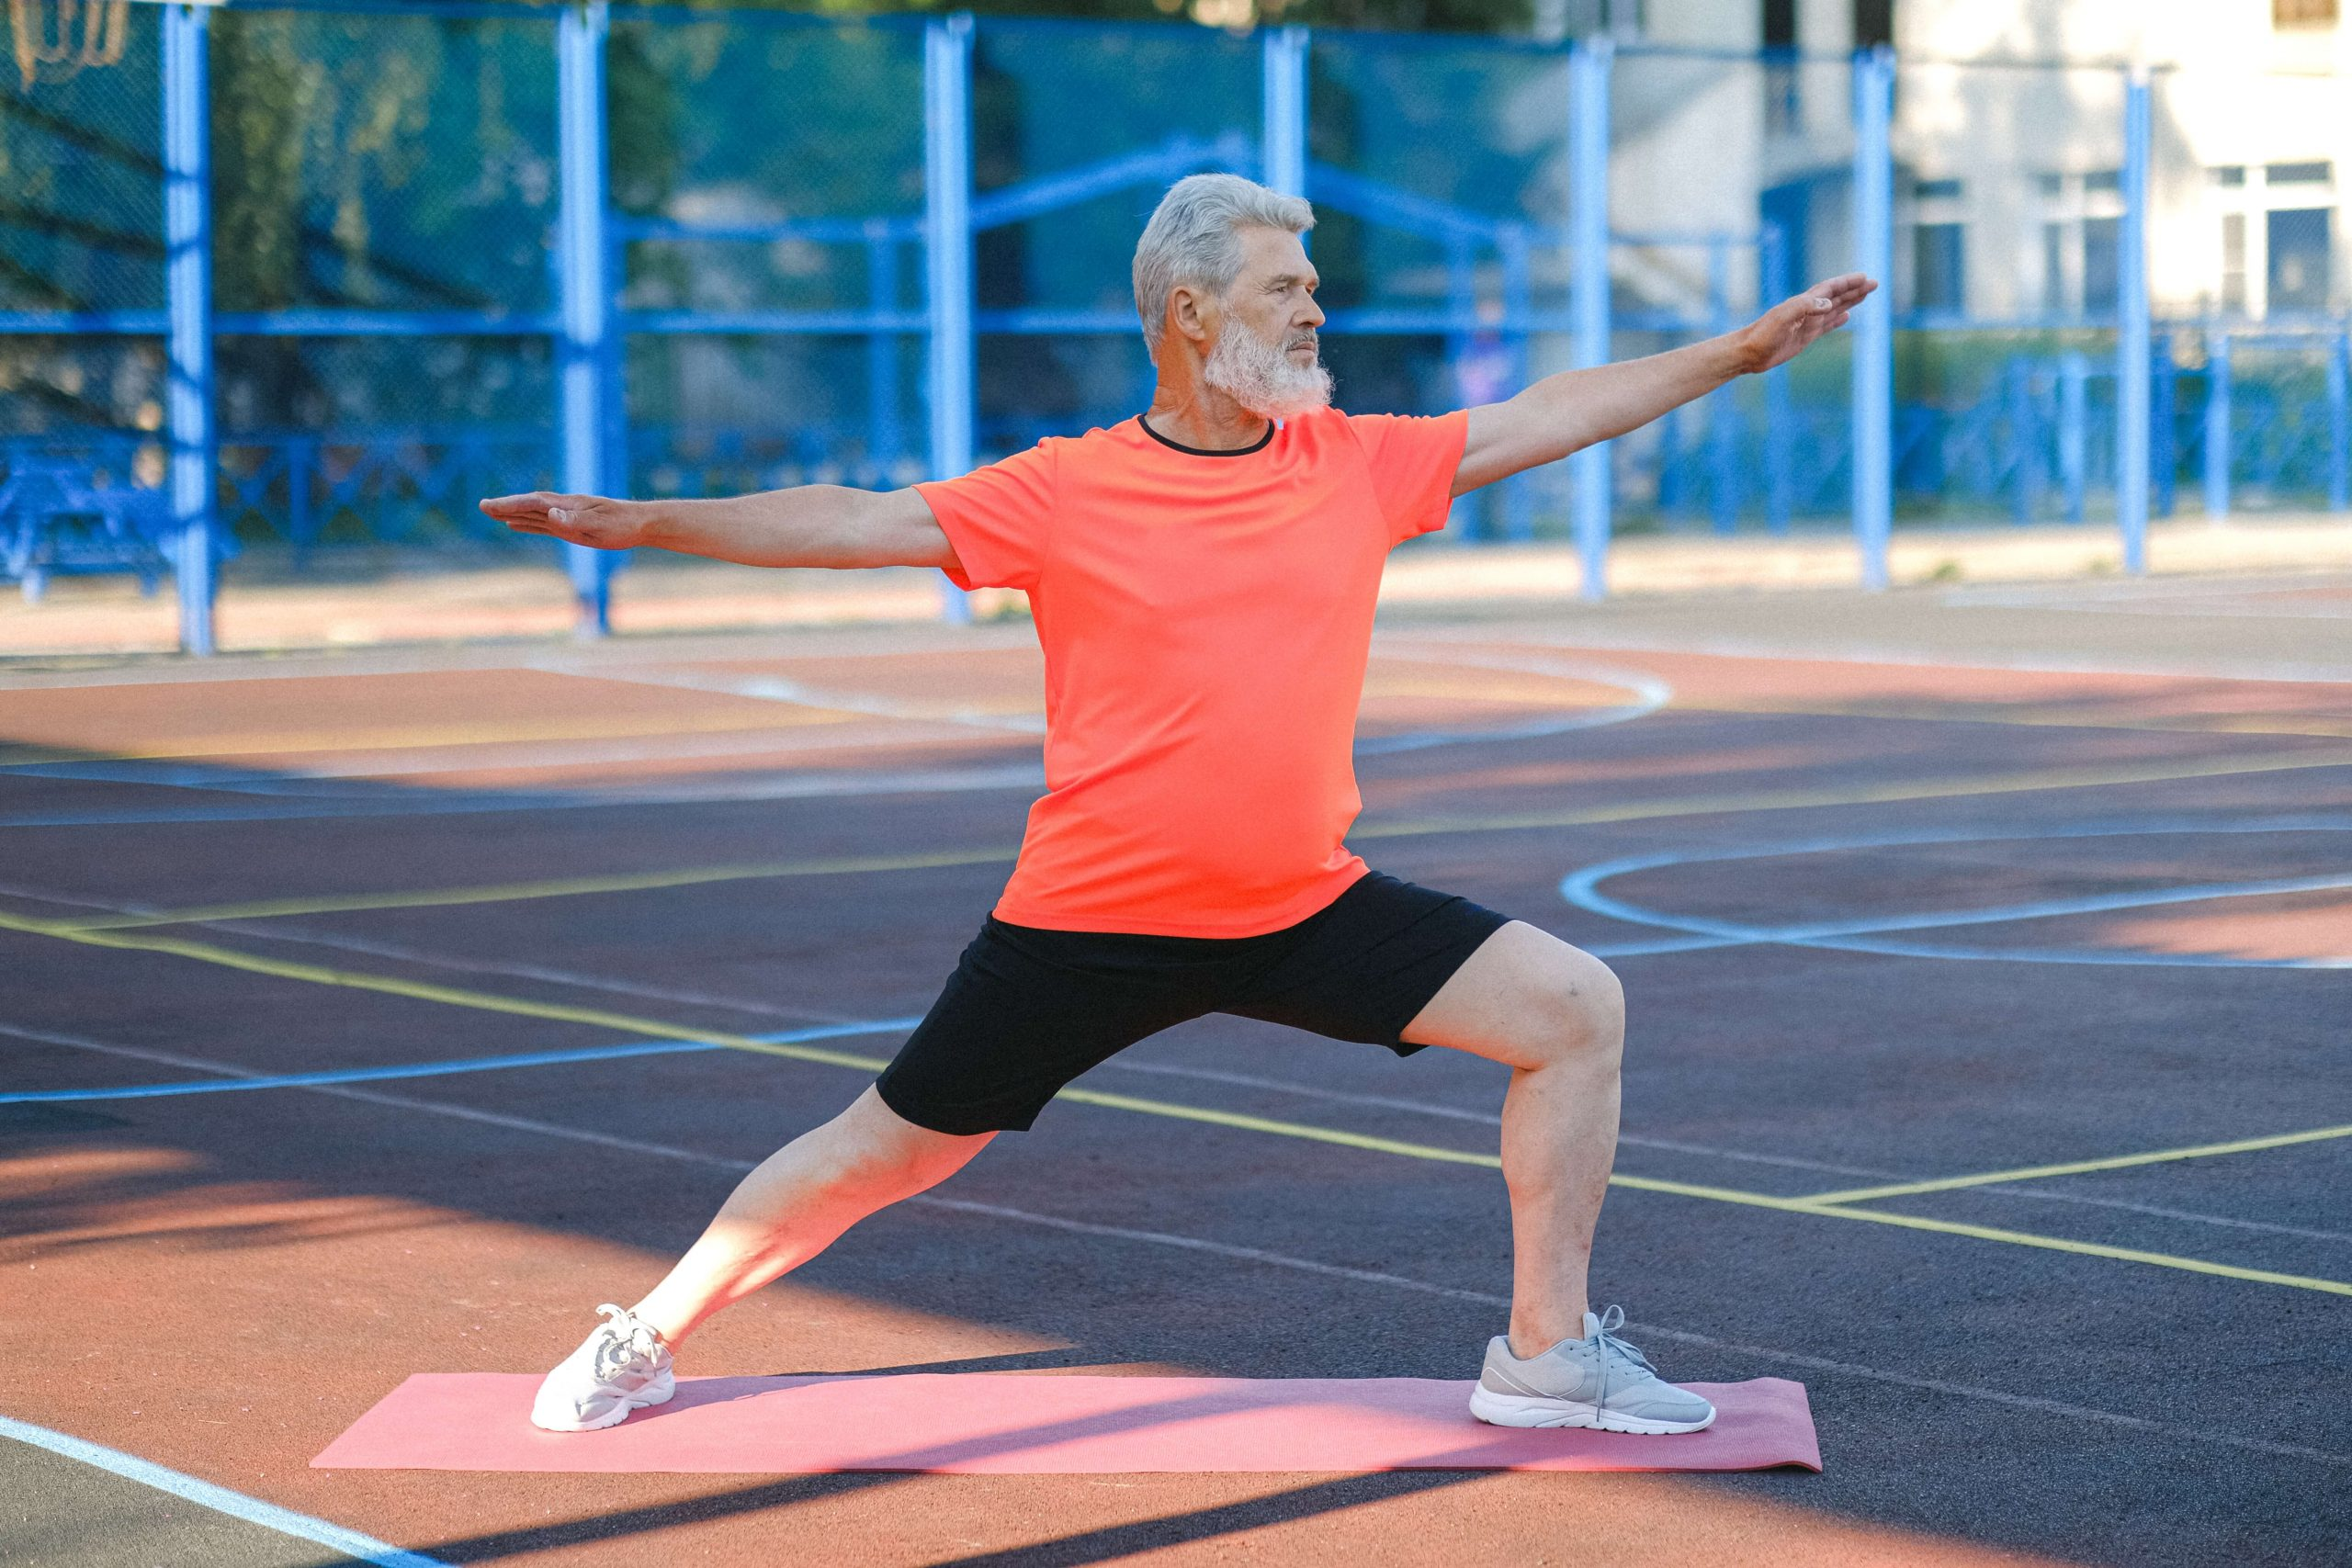 Two months of gentle yoga is enough to cut risk of falls in elderly